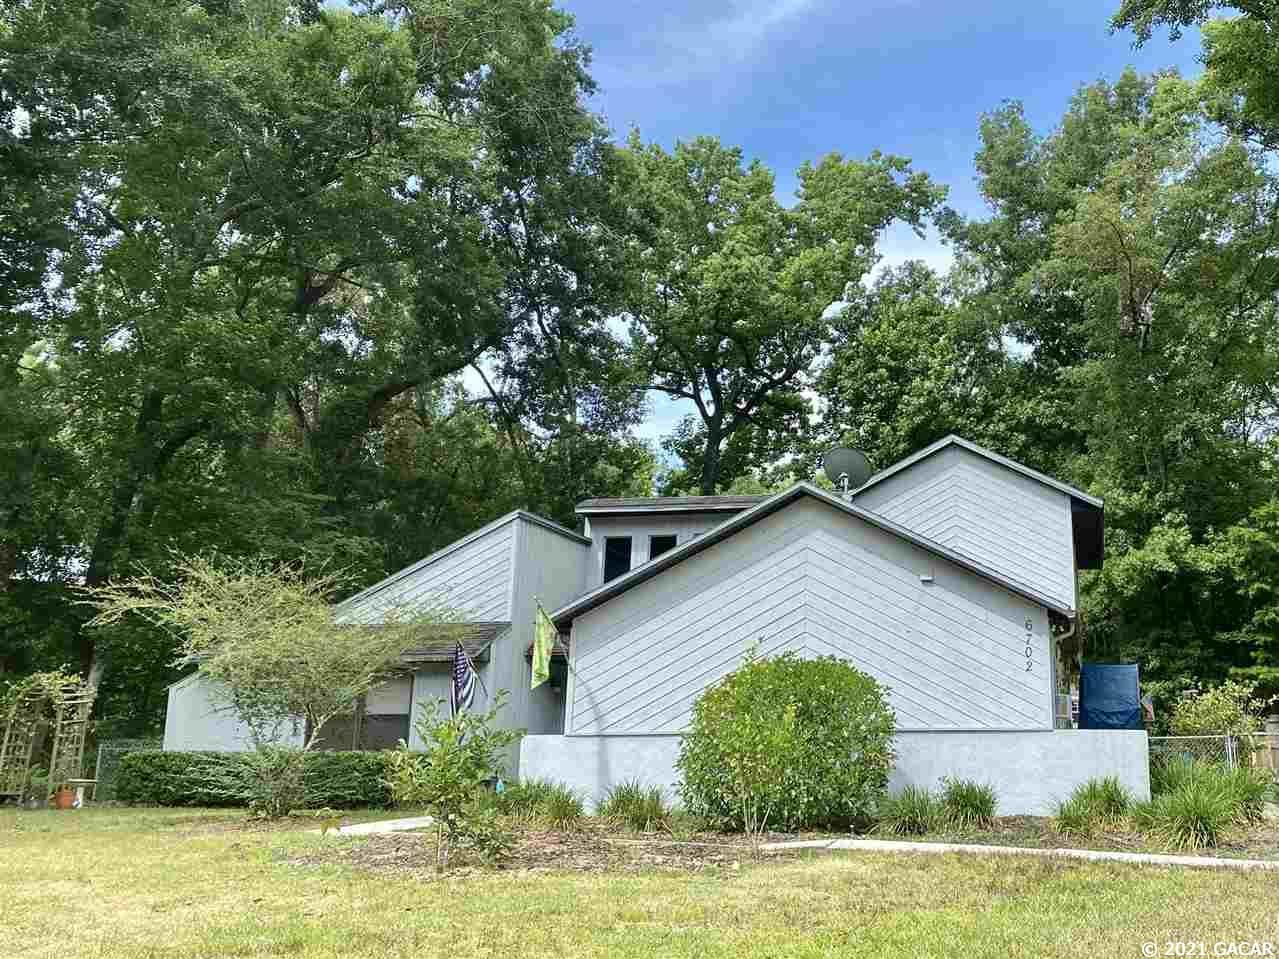 6702 NW 52nd Terrace, Gainesville, FL 32653 - #: 441883